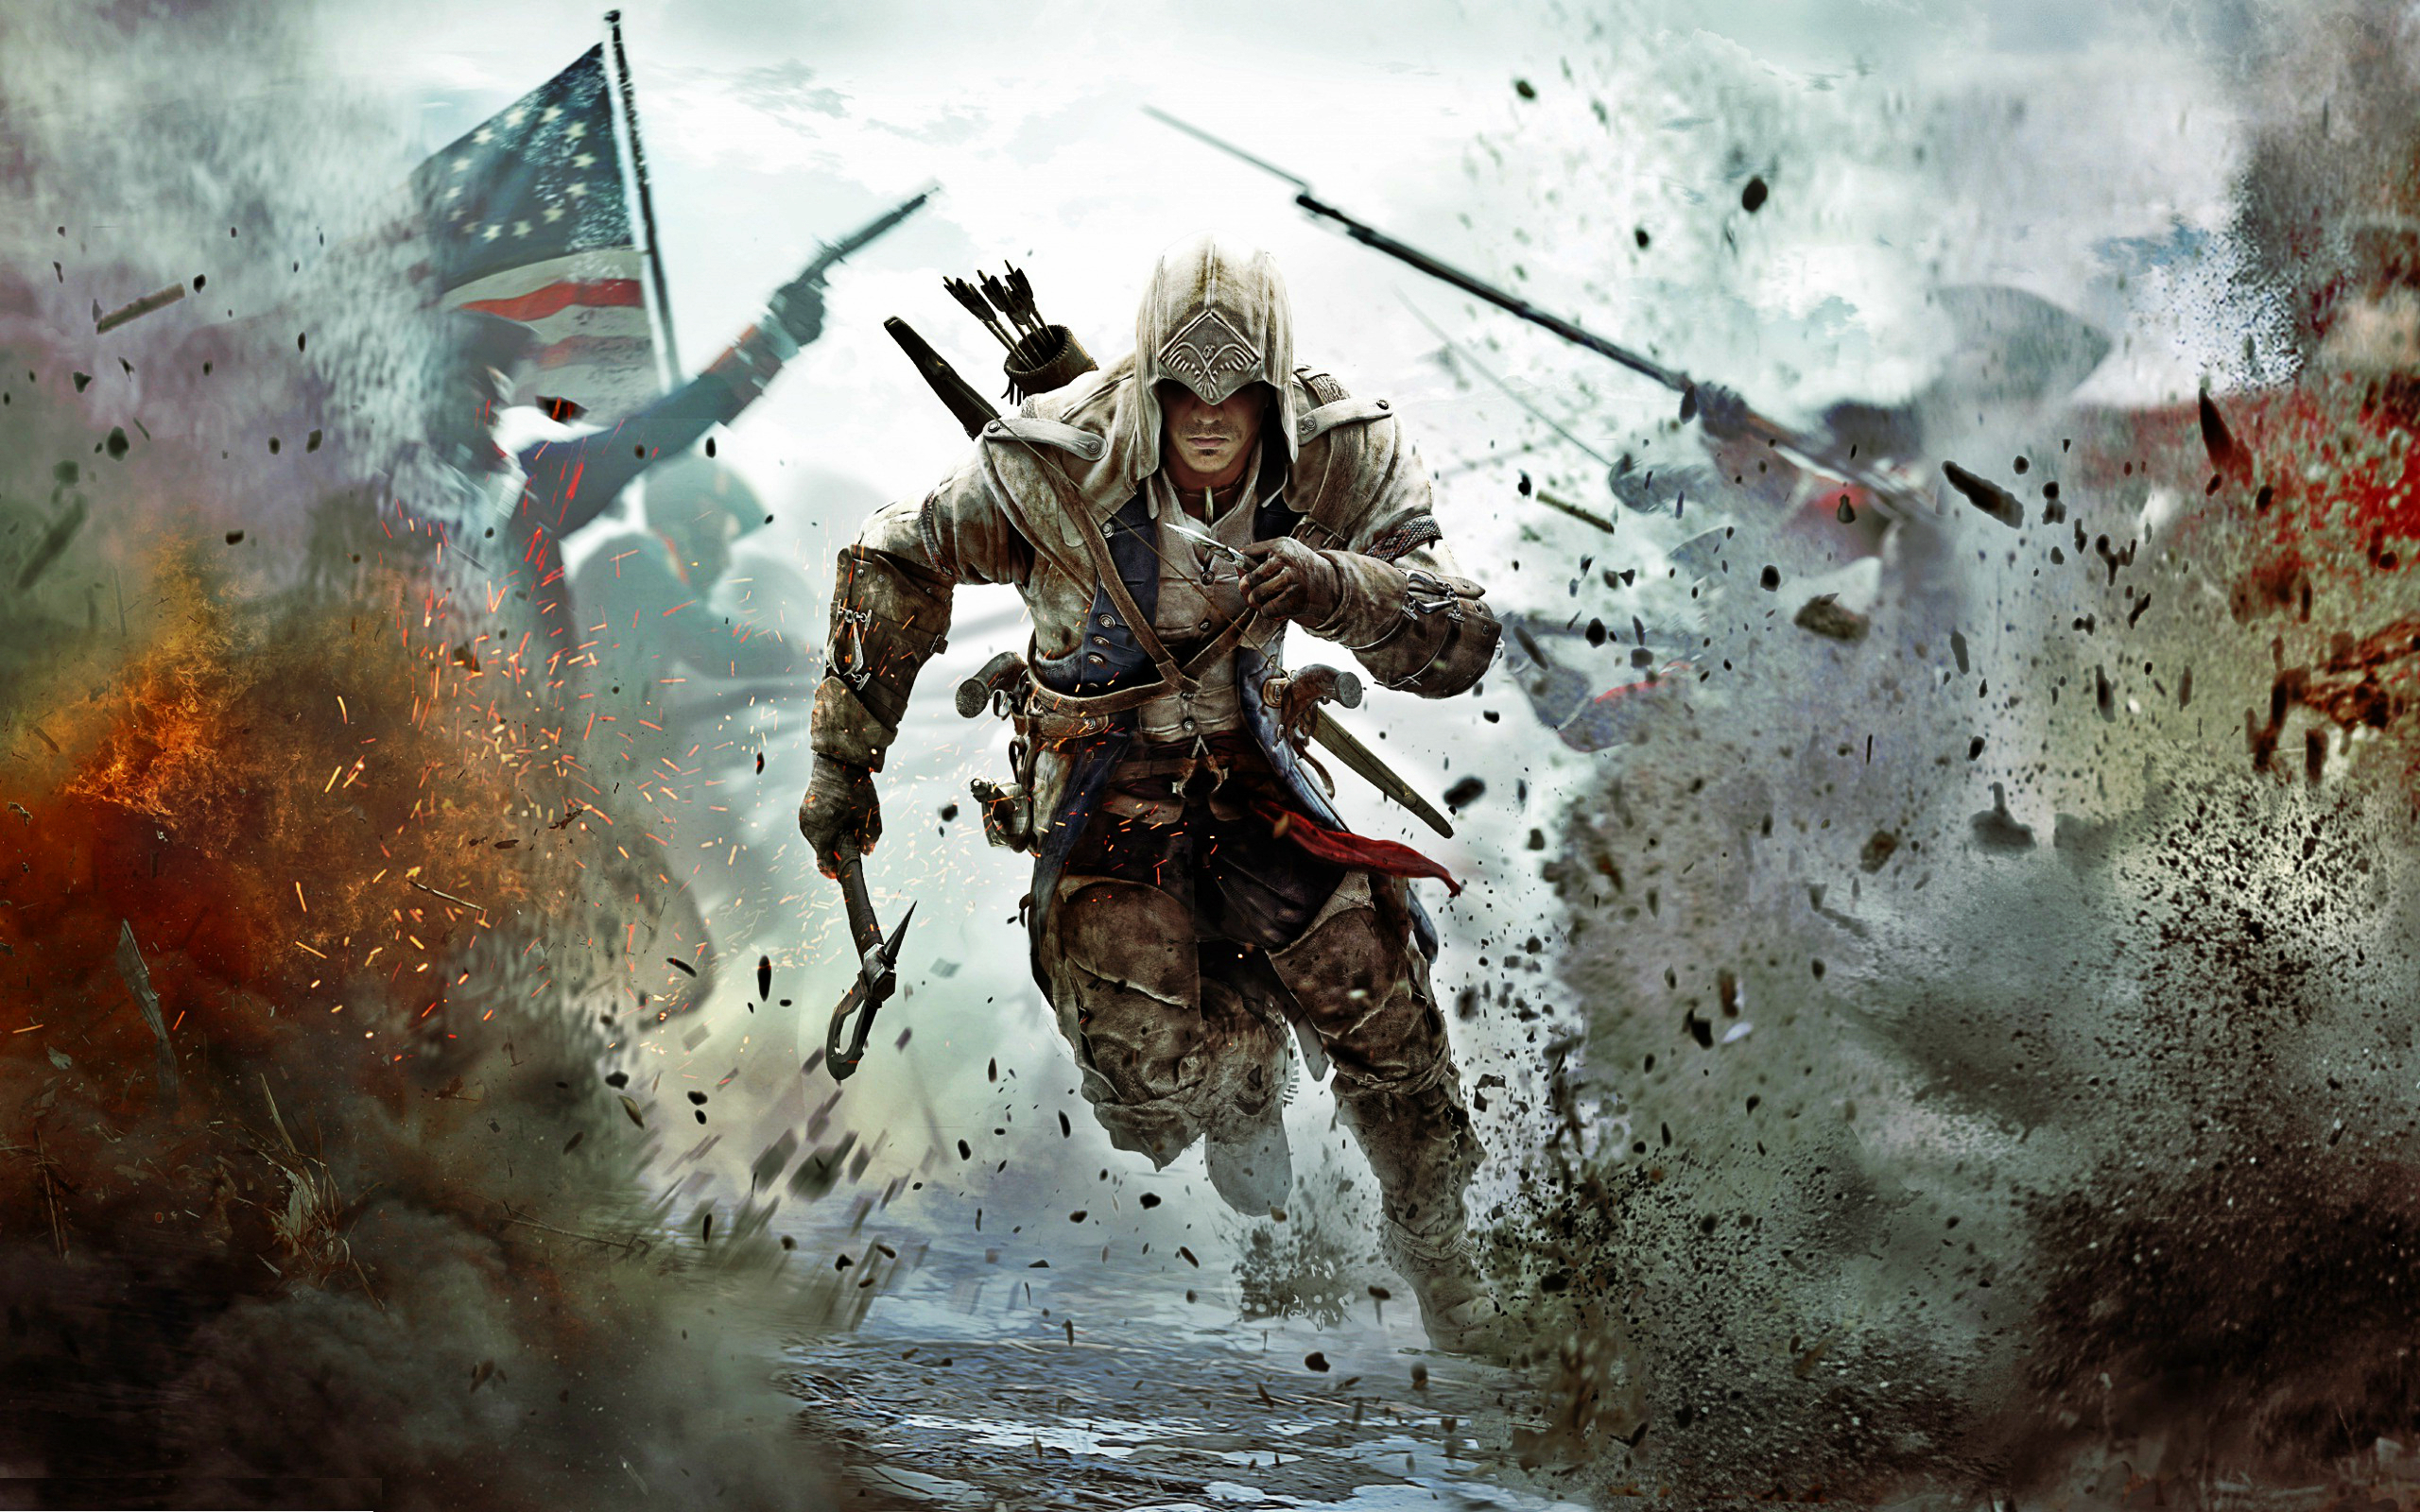 Assassins creed wallpaper 2560x1600